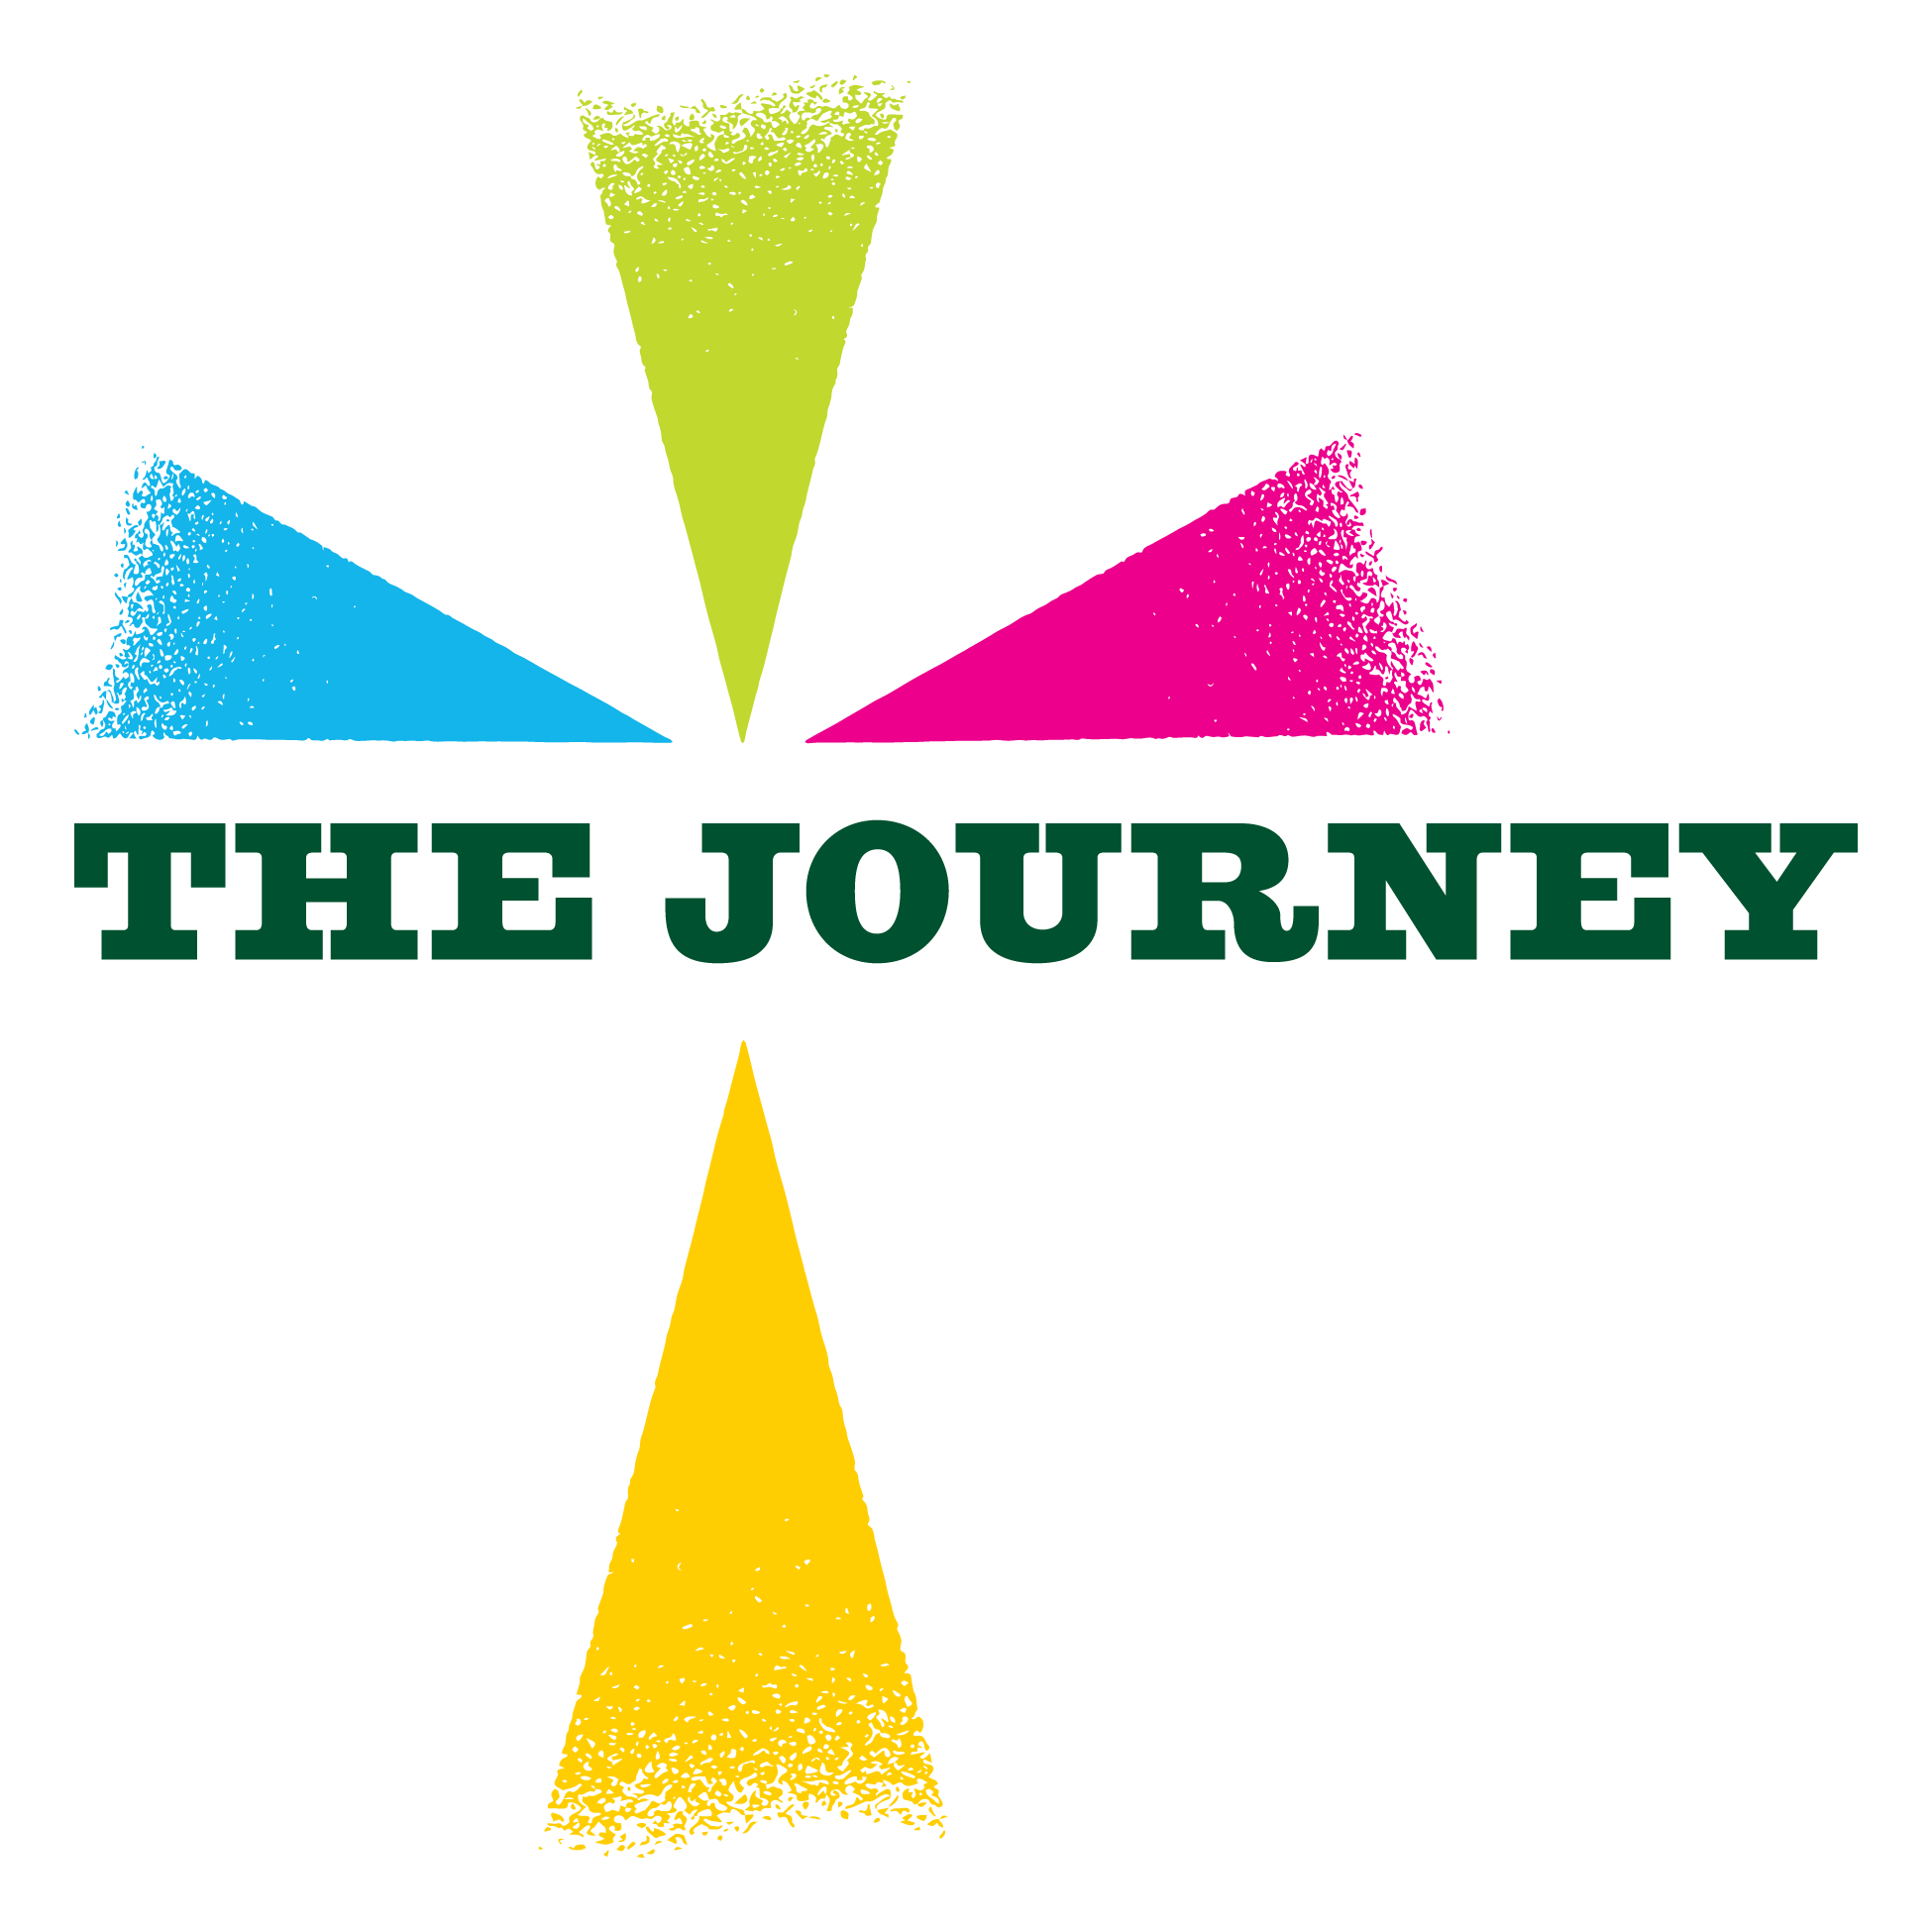 1950x1950 > Green Journey Wallpapers